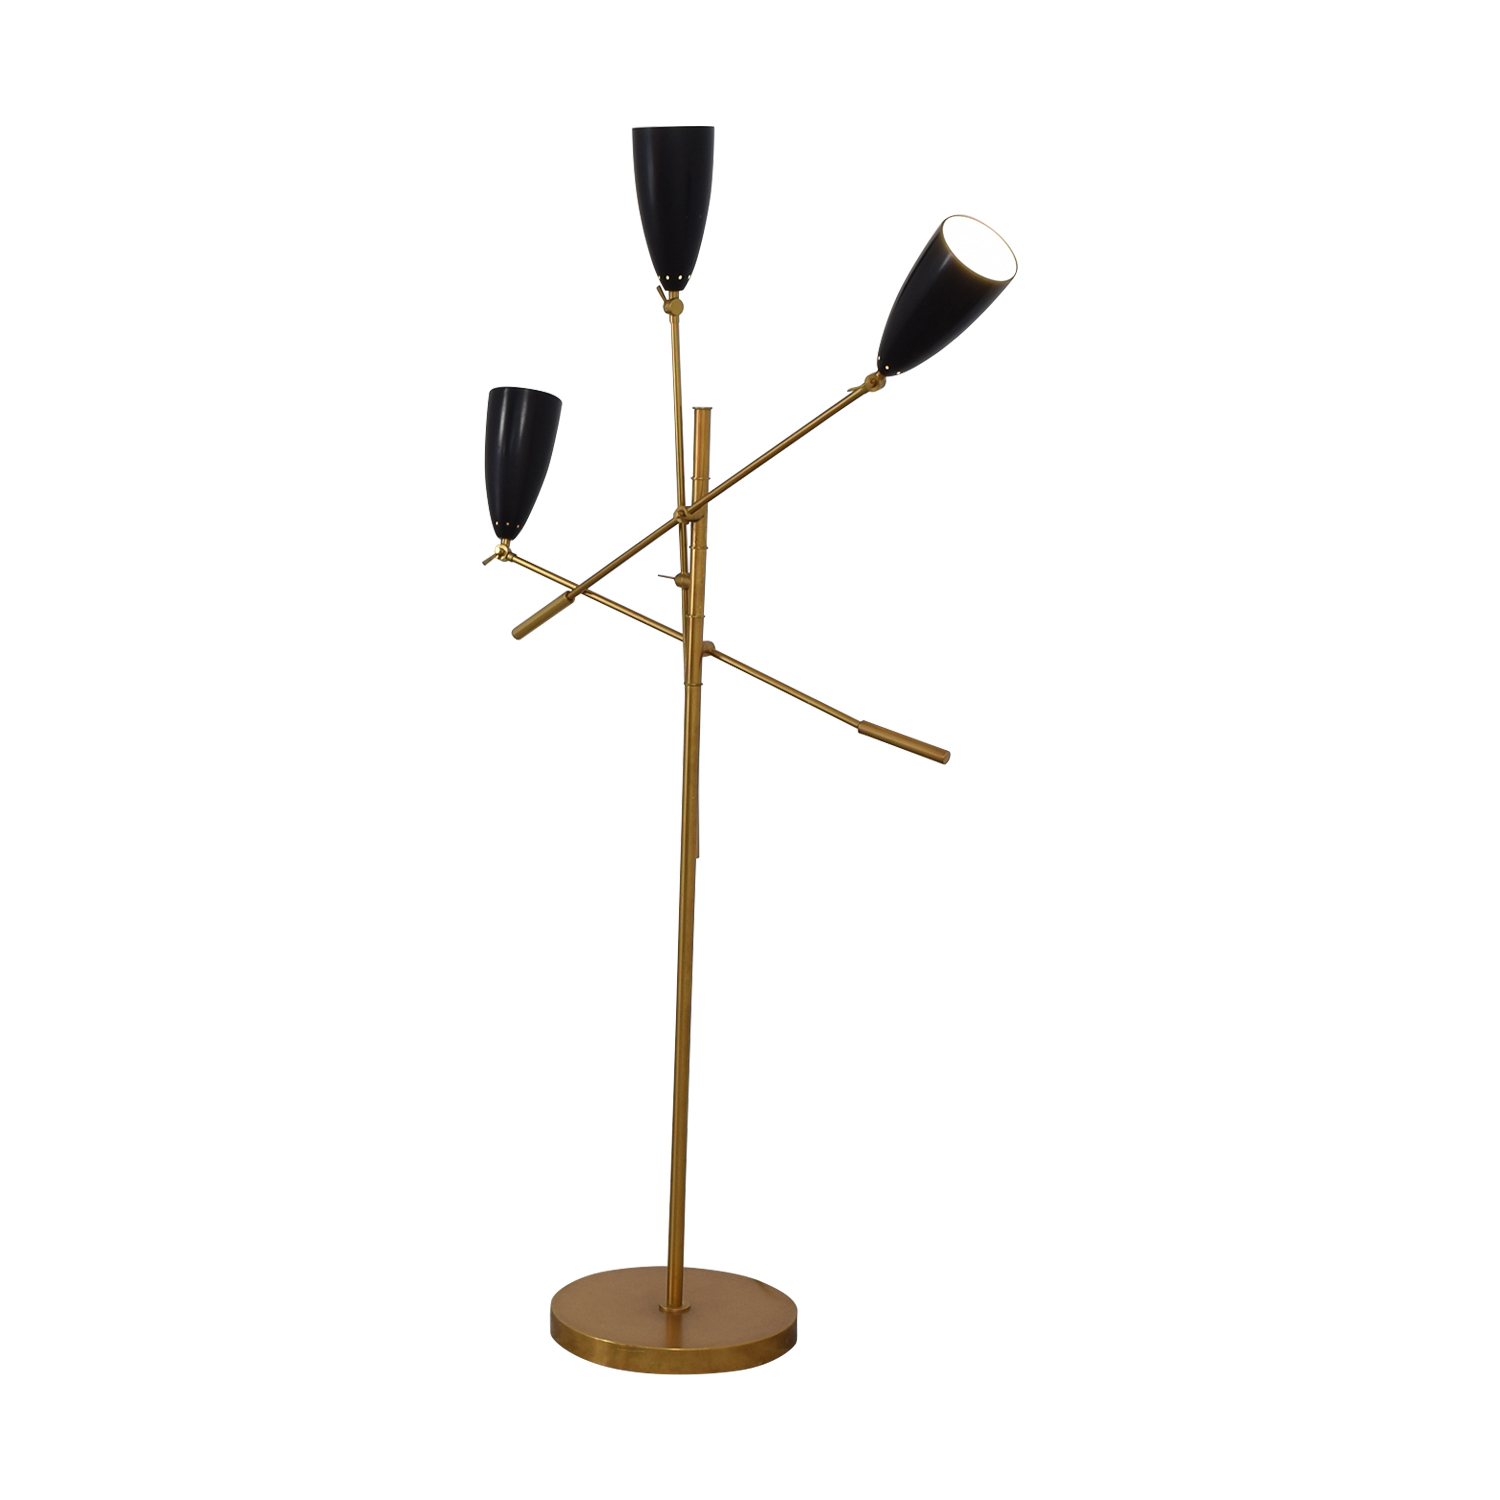 West Elm West Elm Gold and Black Floor Lamp price